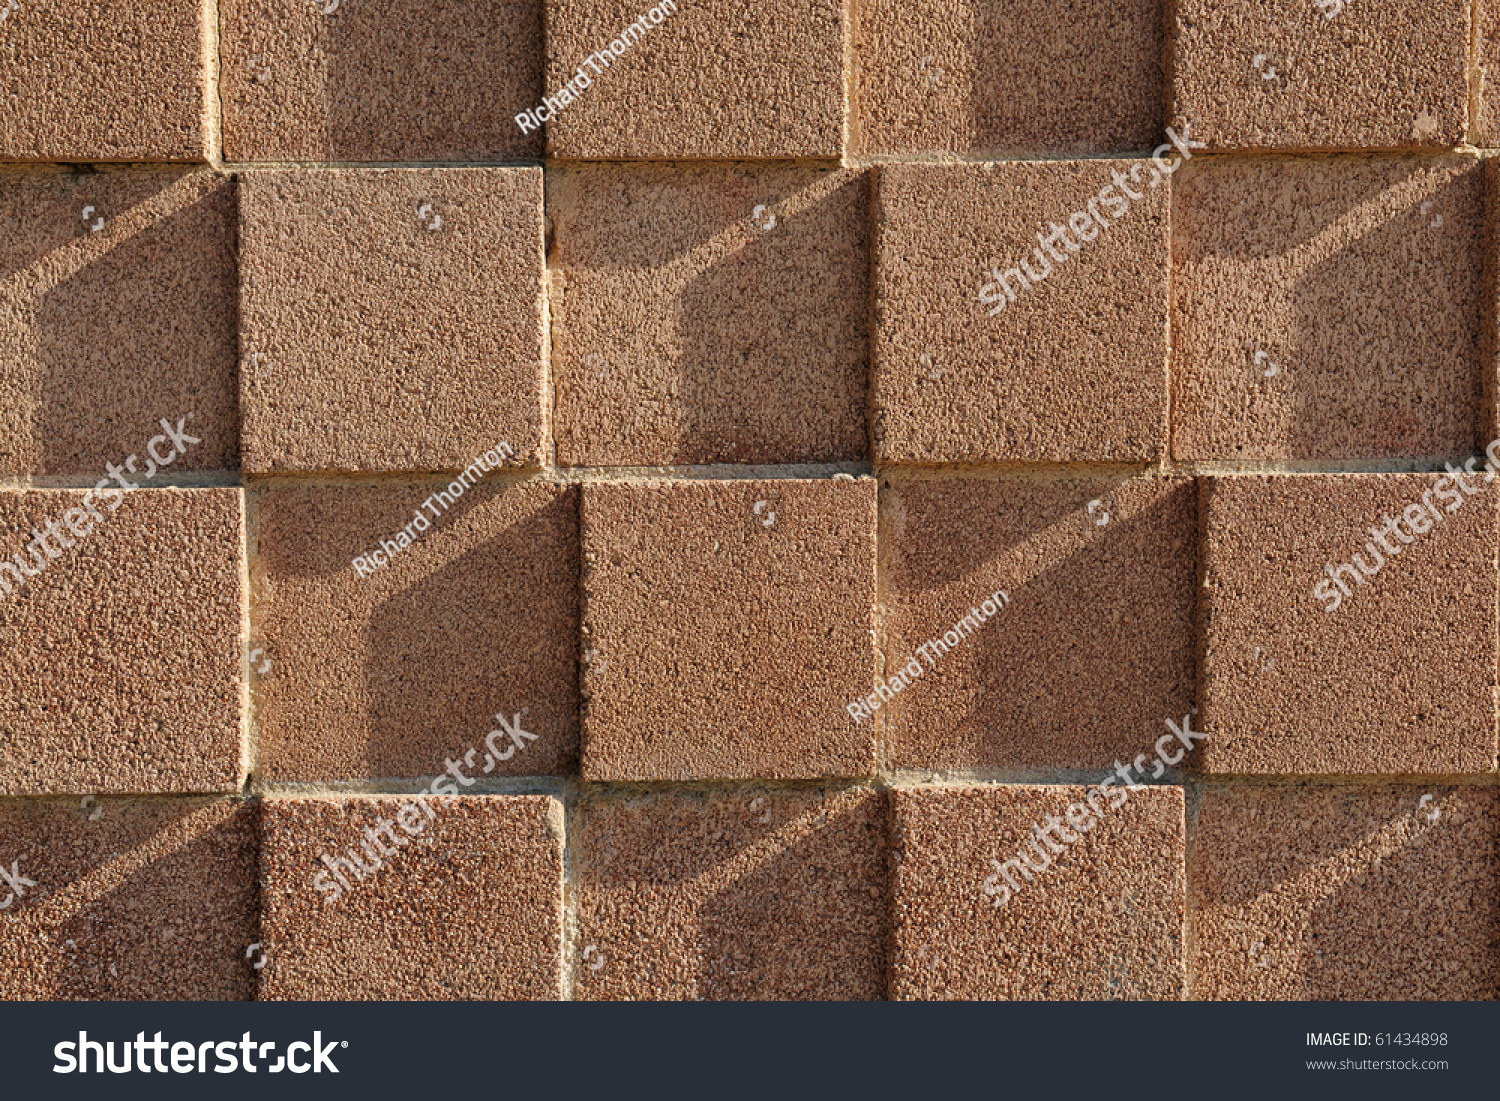 Background Texture Or Abstract Fancy Two Level Concrete